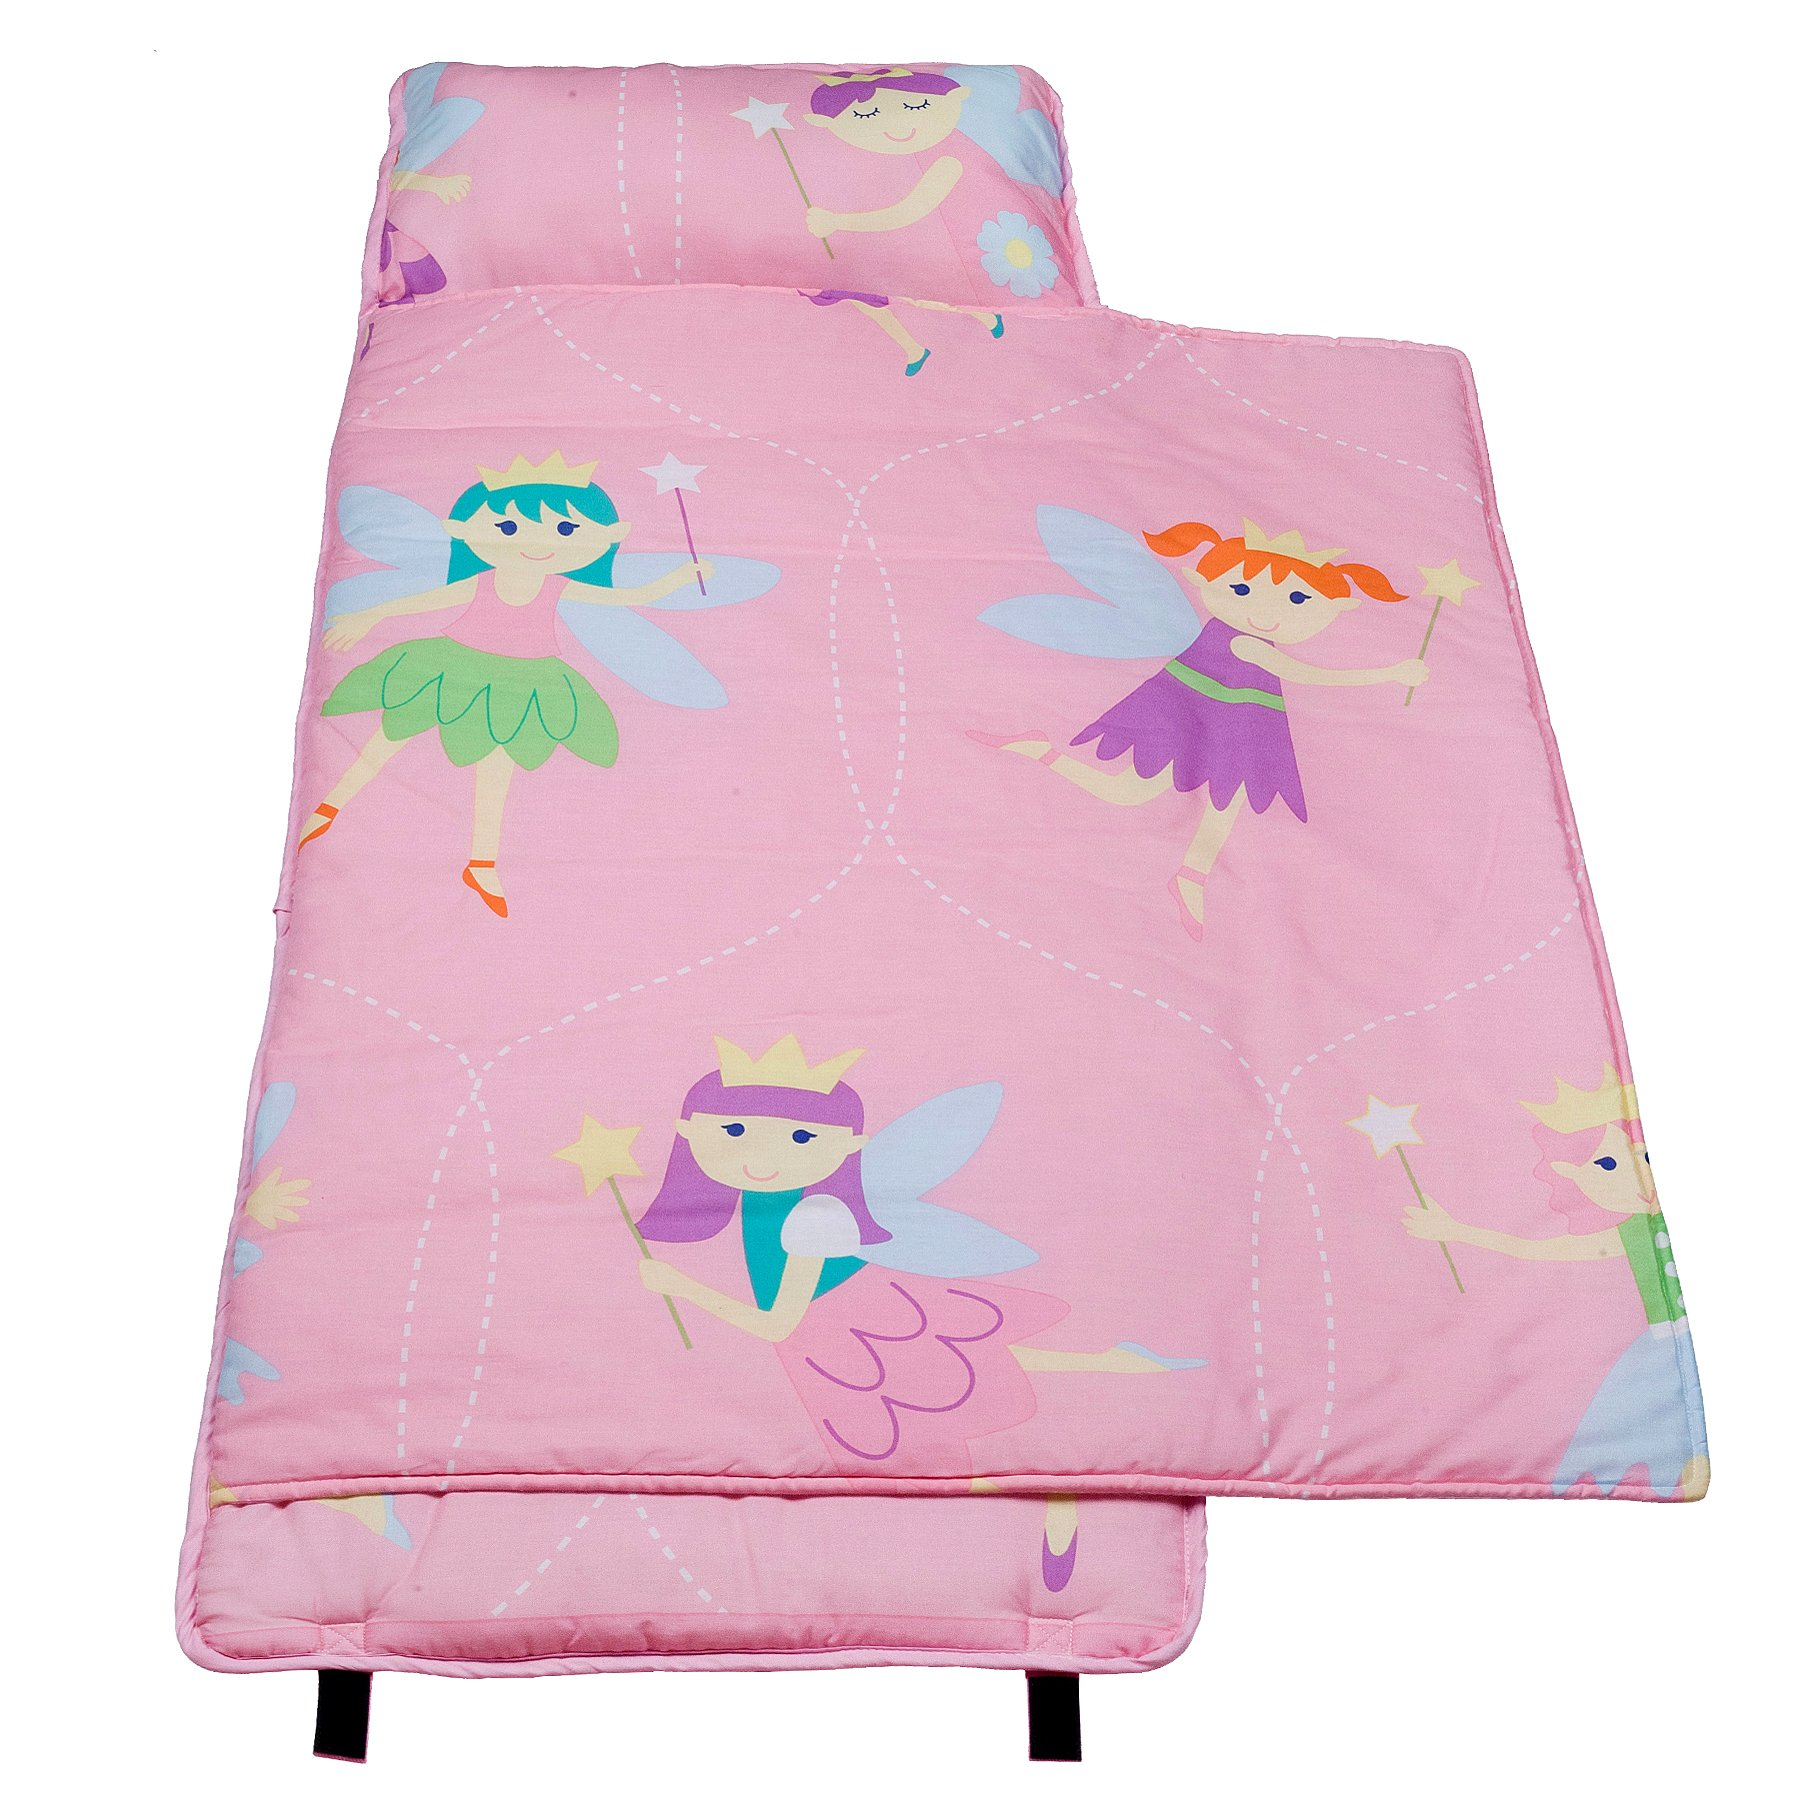 Wildkin 100% Cotton Nap Mat, Olive Kids by Children's Cotton Nap Mat with Built in Blanket and Pillowcase, Pillow Insert Included, 100% Cotton, Children Ages 3-7 years – Fairy Princess